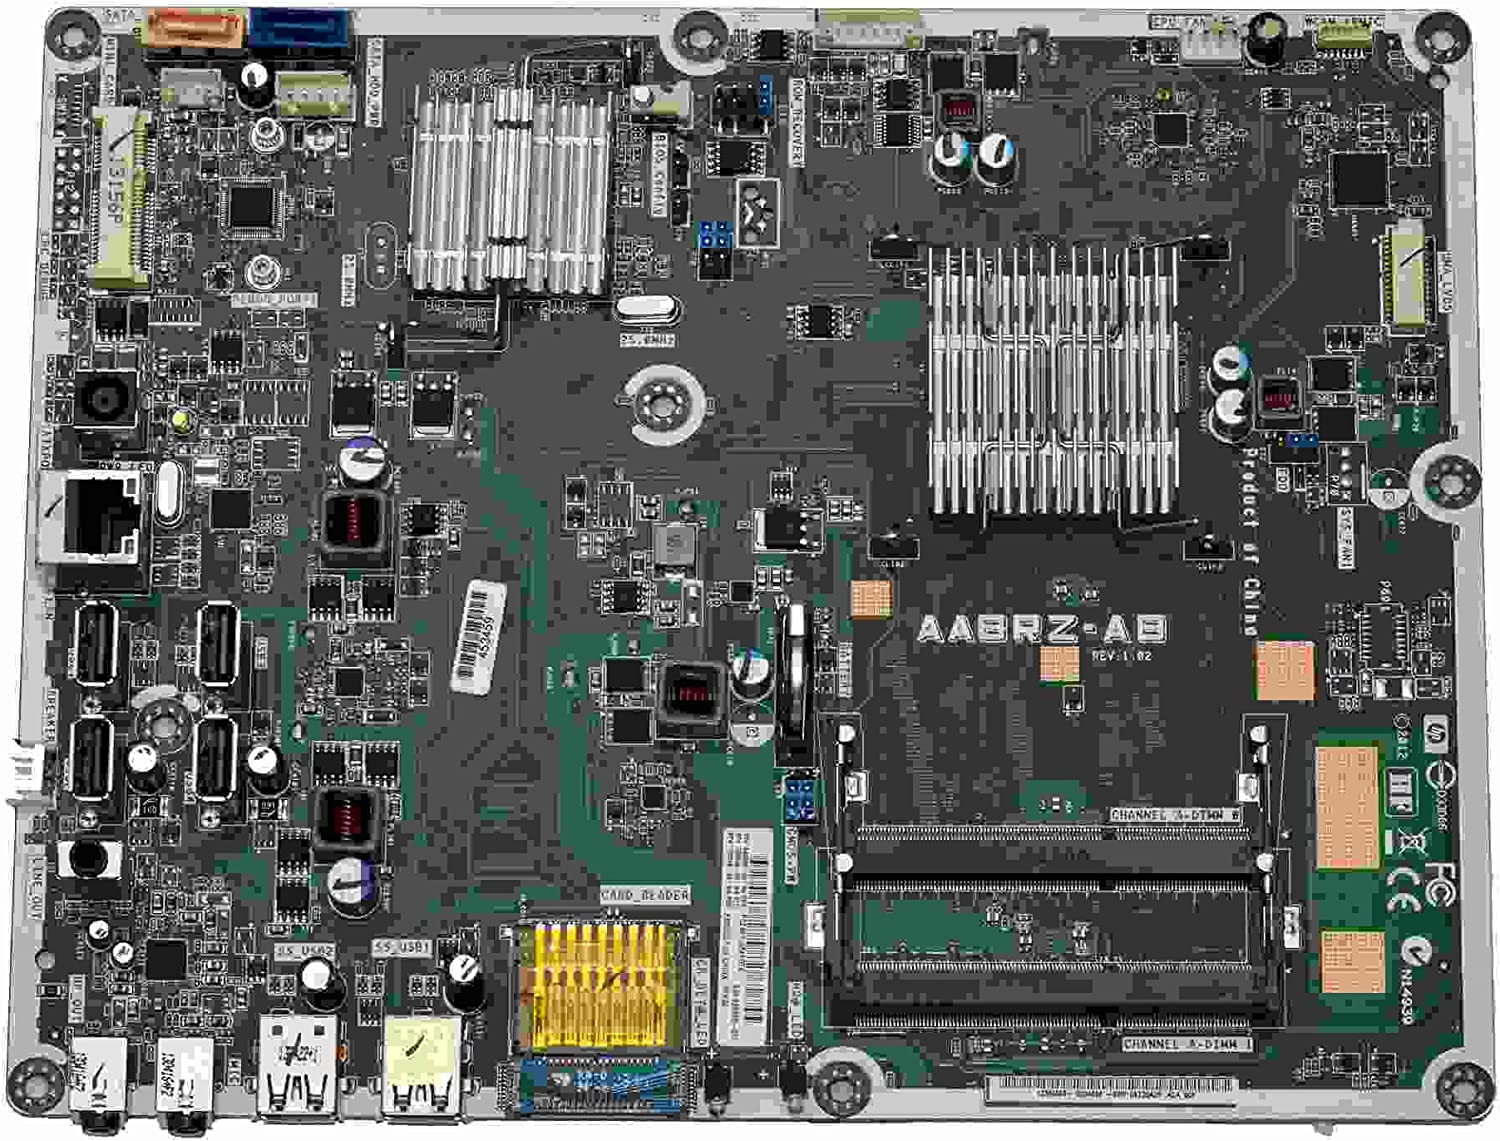 698060-001 HP Pavilion 20 Araza2 AIO Intel Motherboard w/ AMD E1-1200 1.4GHz CPU